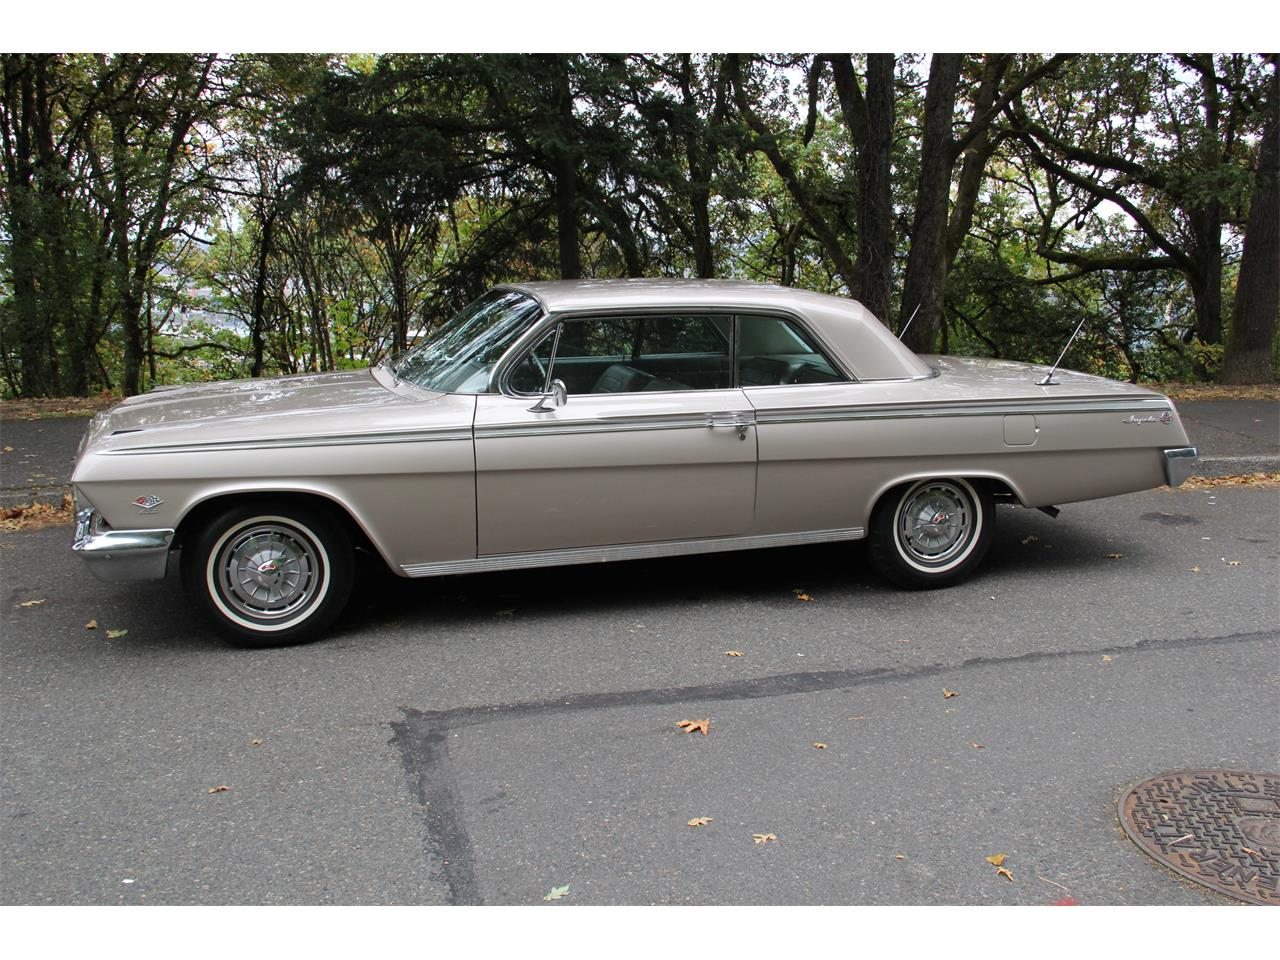 Large Picture of '62 Chevrolet Impala SS - $59,995.00 Offered by Charvet Classic Cars - QNWT